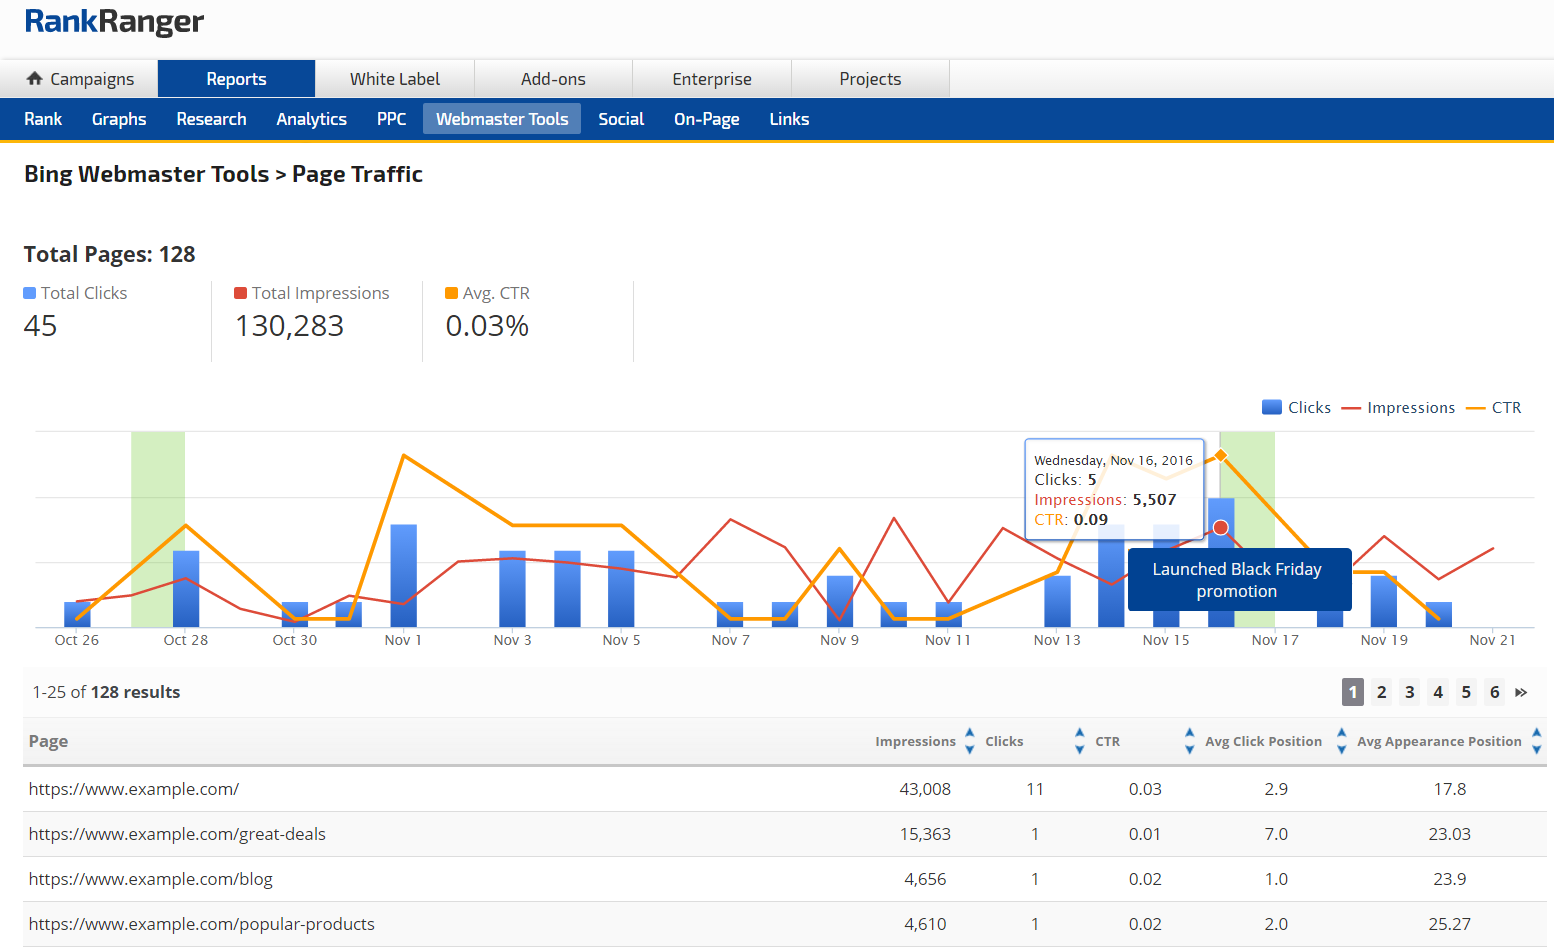 Bing Webmaster Tools Page Traffic